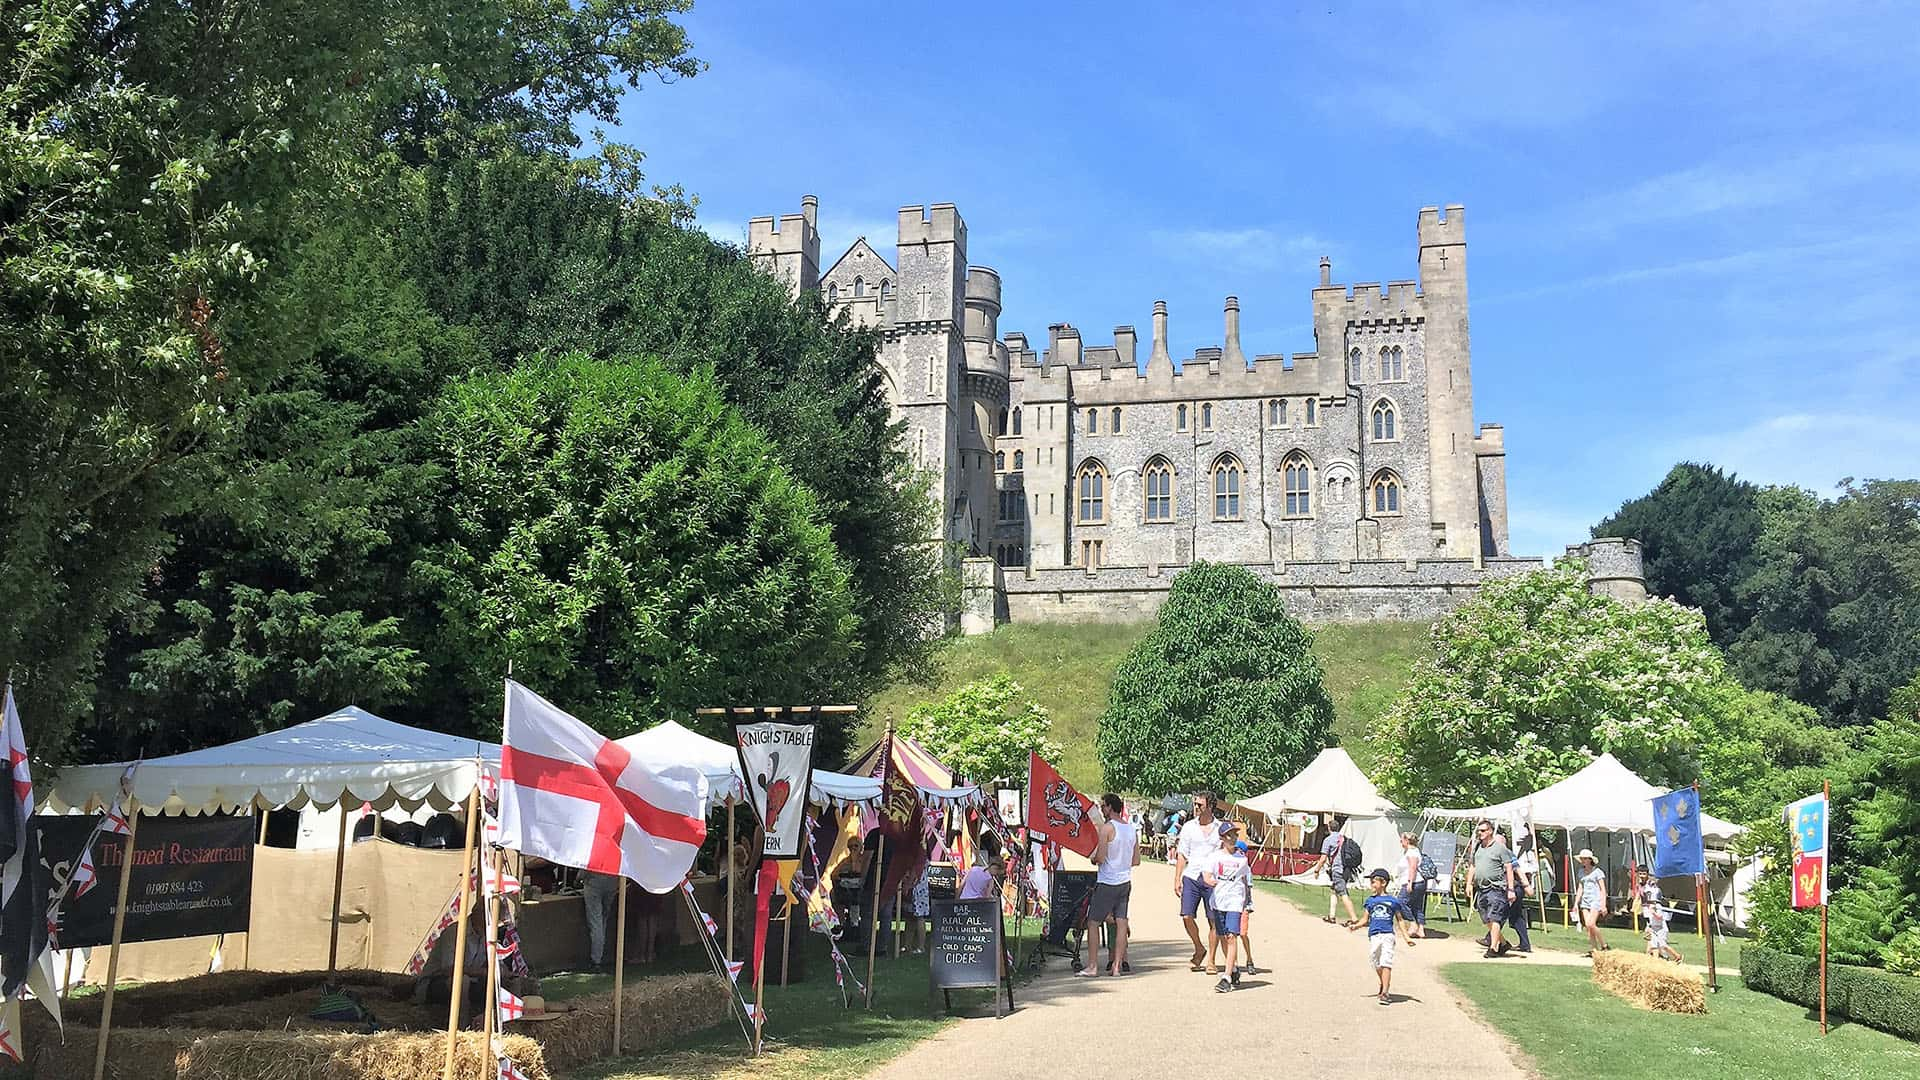 Private Day Tour to Stunning Arundel Castle from London